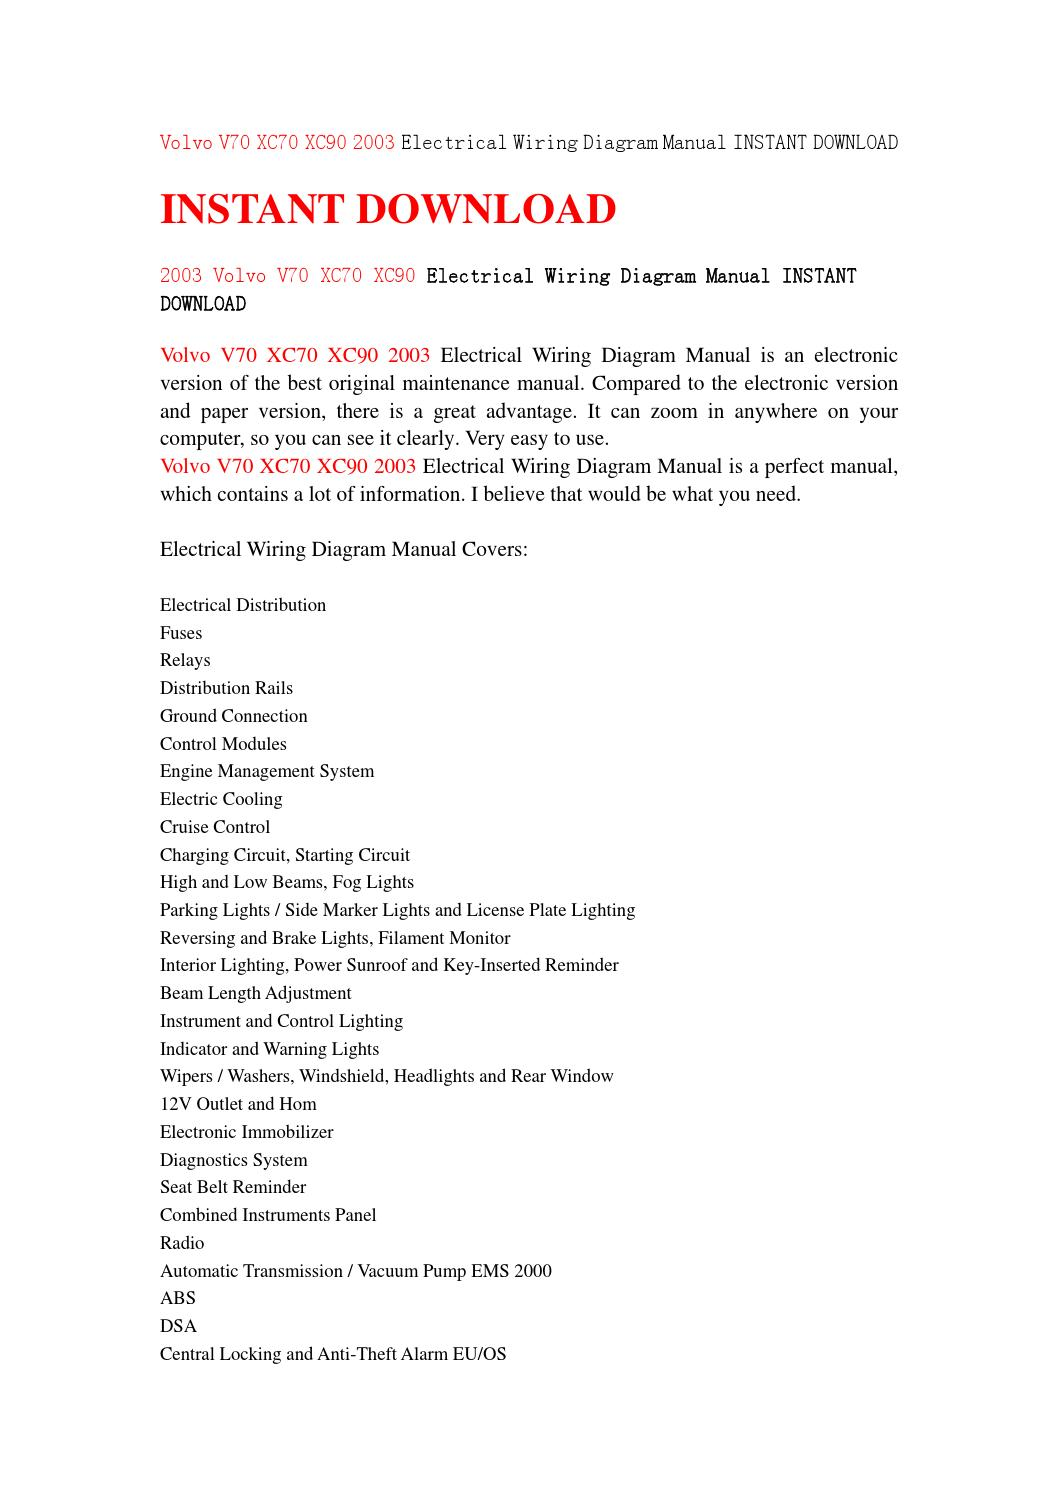 Volvo V70 Xc70 Xc90 2003 Electrical Wiring Diagram Manual Instant Download By Jfhsjefjsne